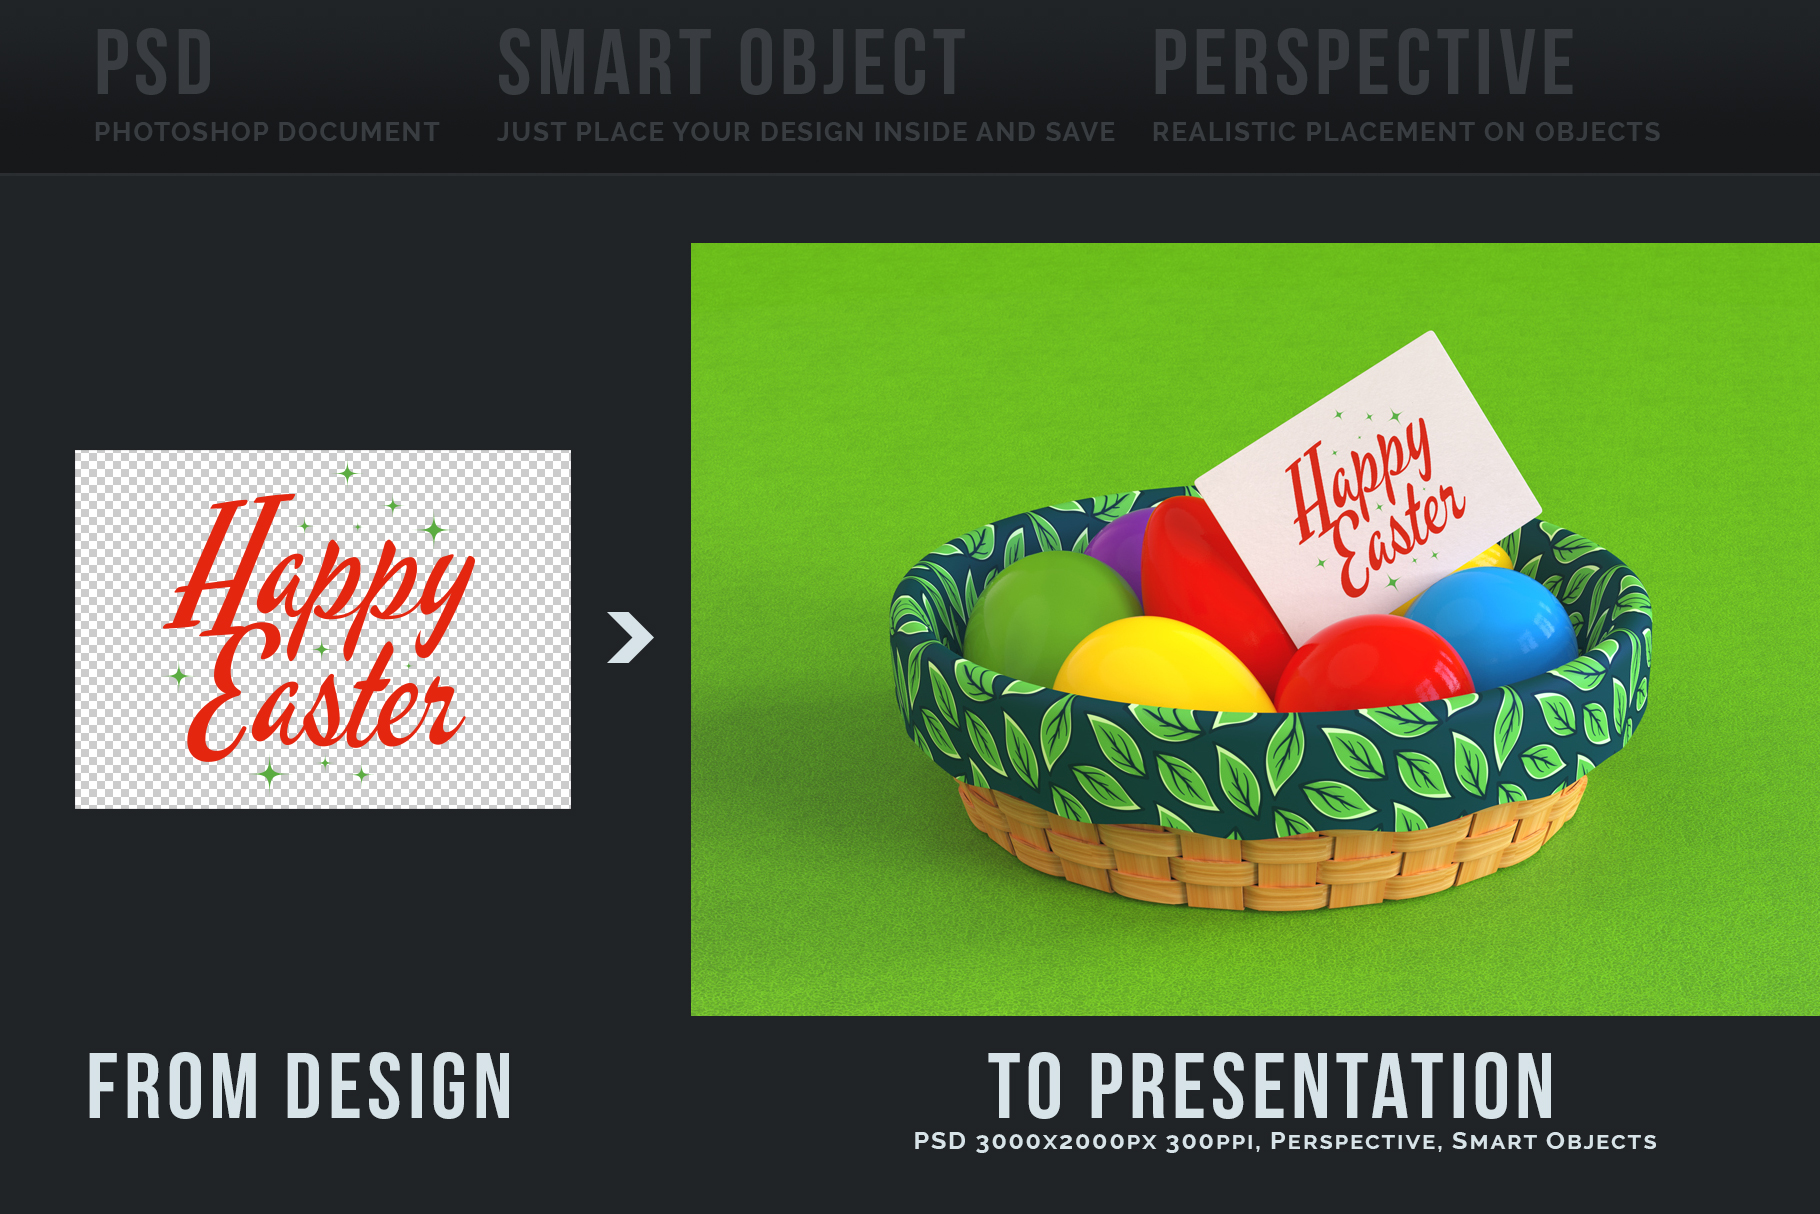 Easter Egg Mockups and Images example image 6